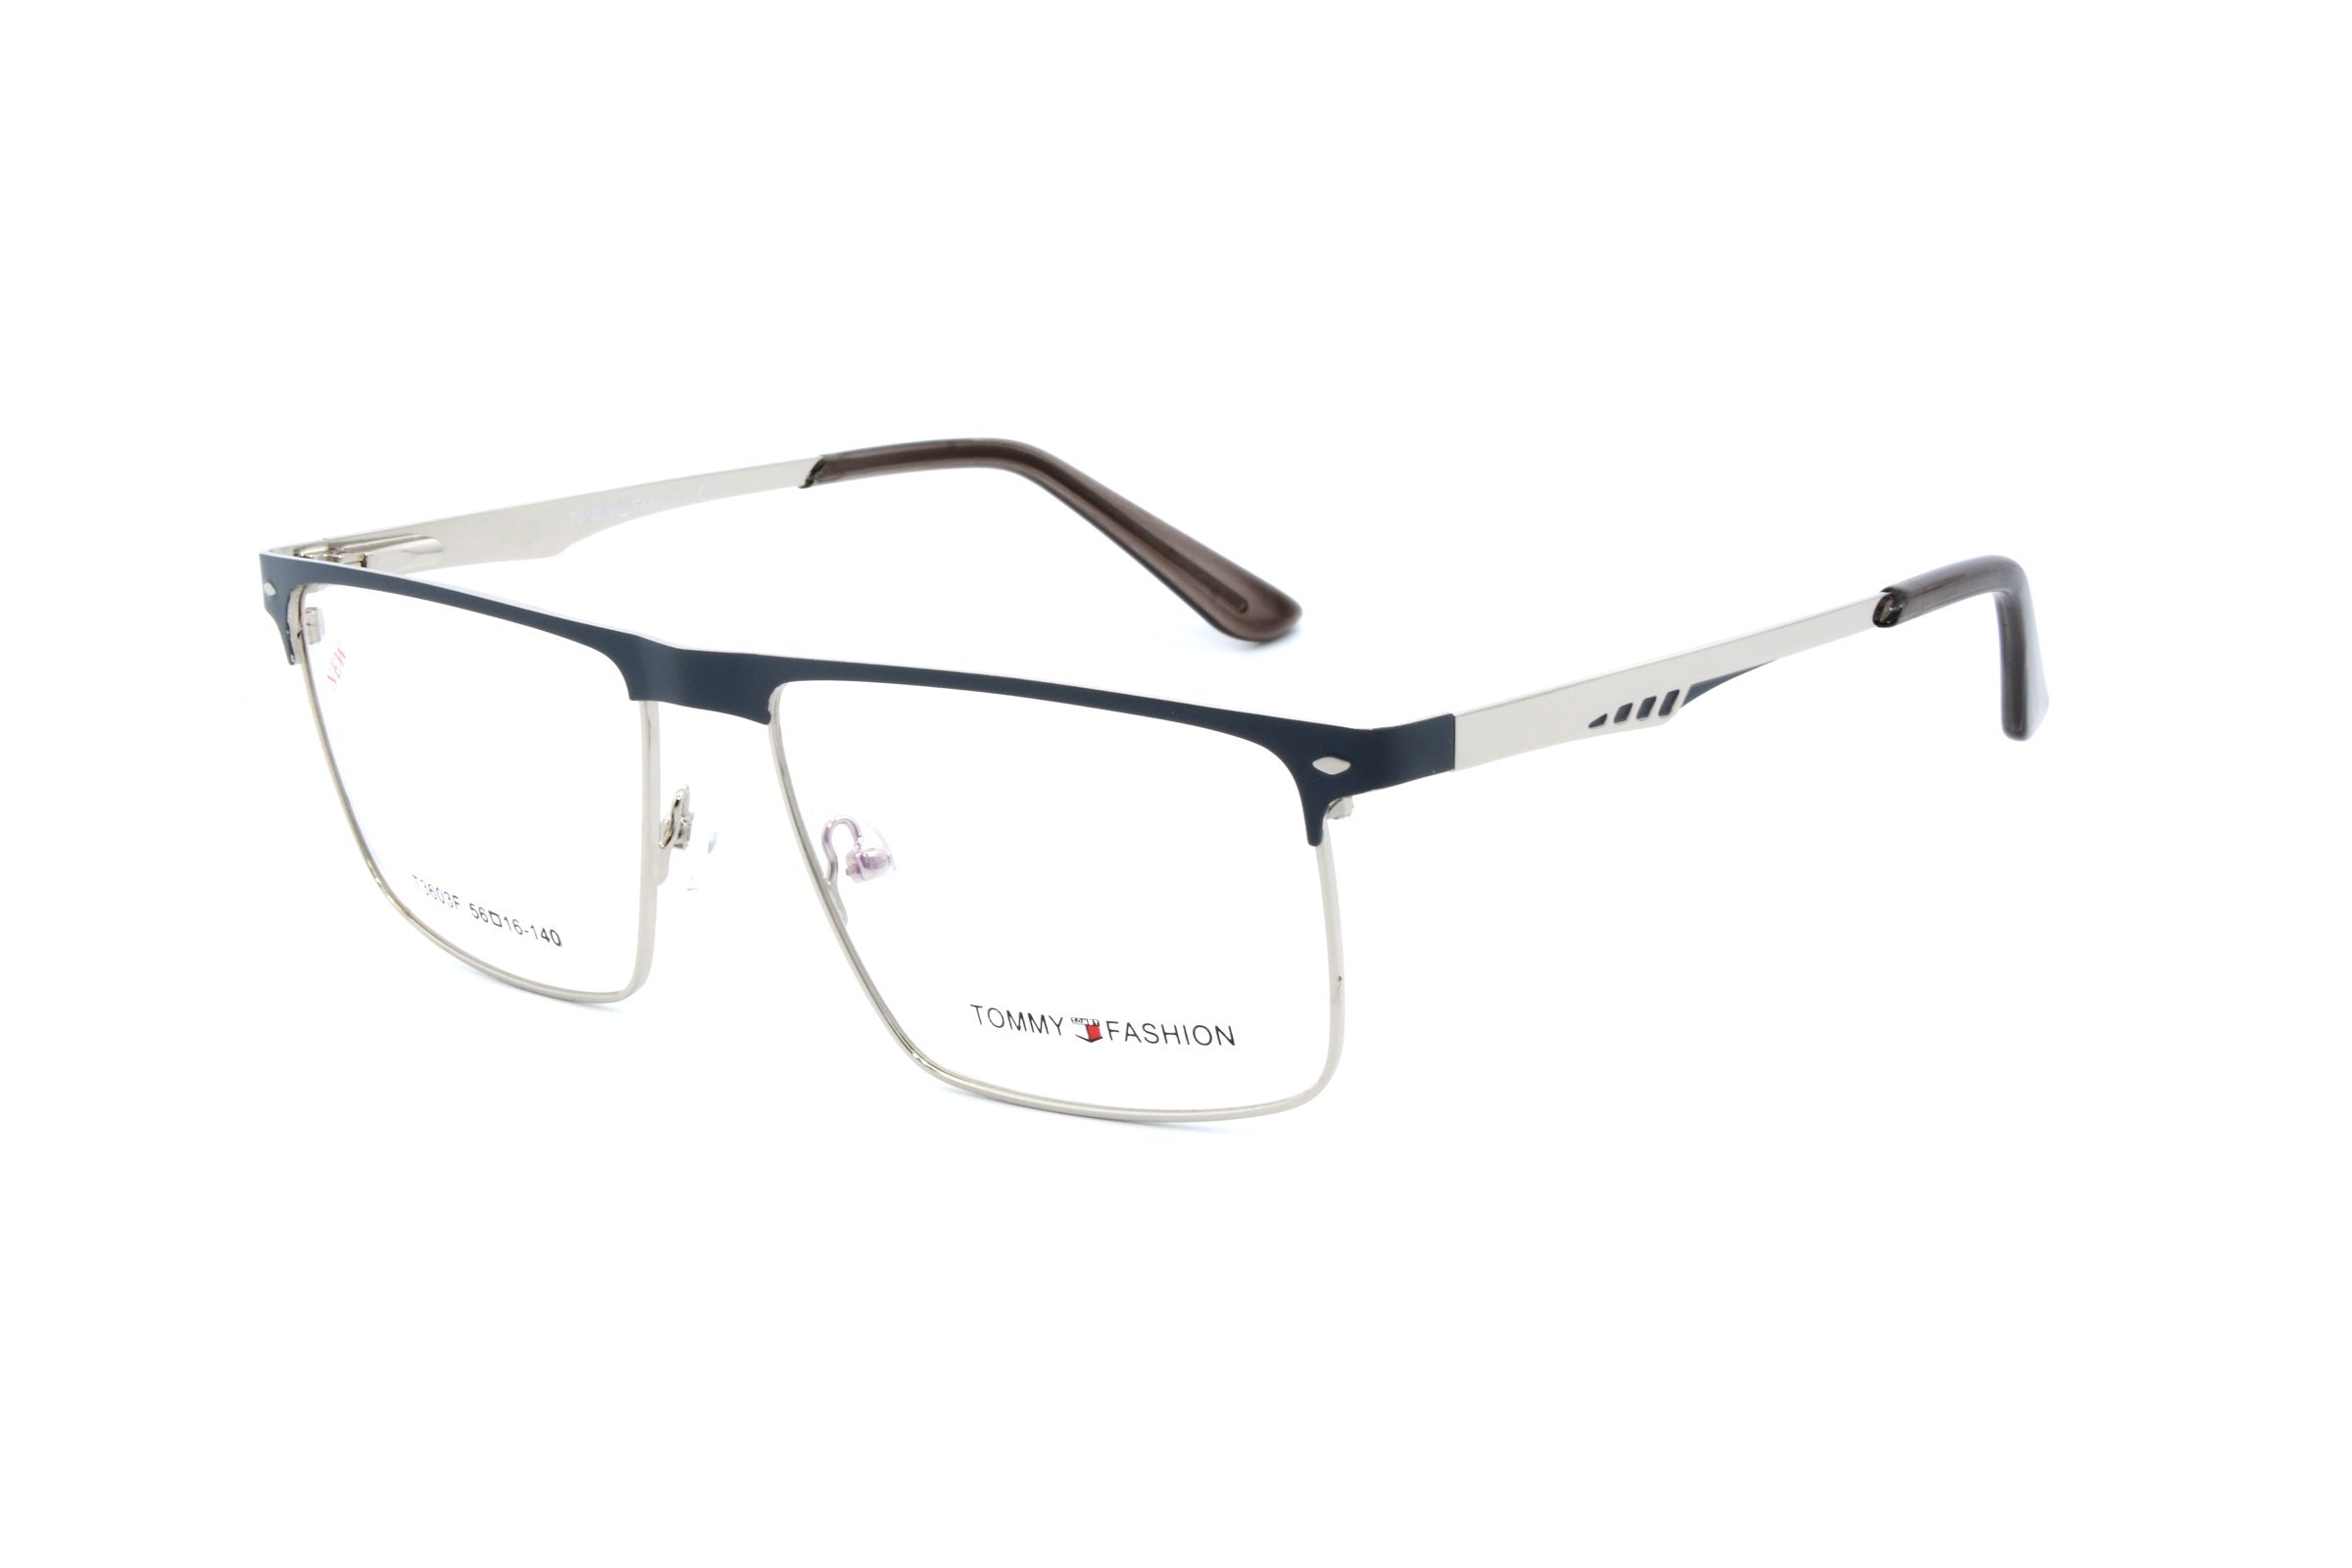 Tommy Fashion eyewear 3603F, C1 - Optics Trading